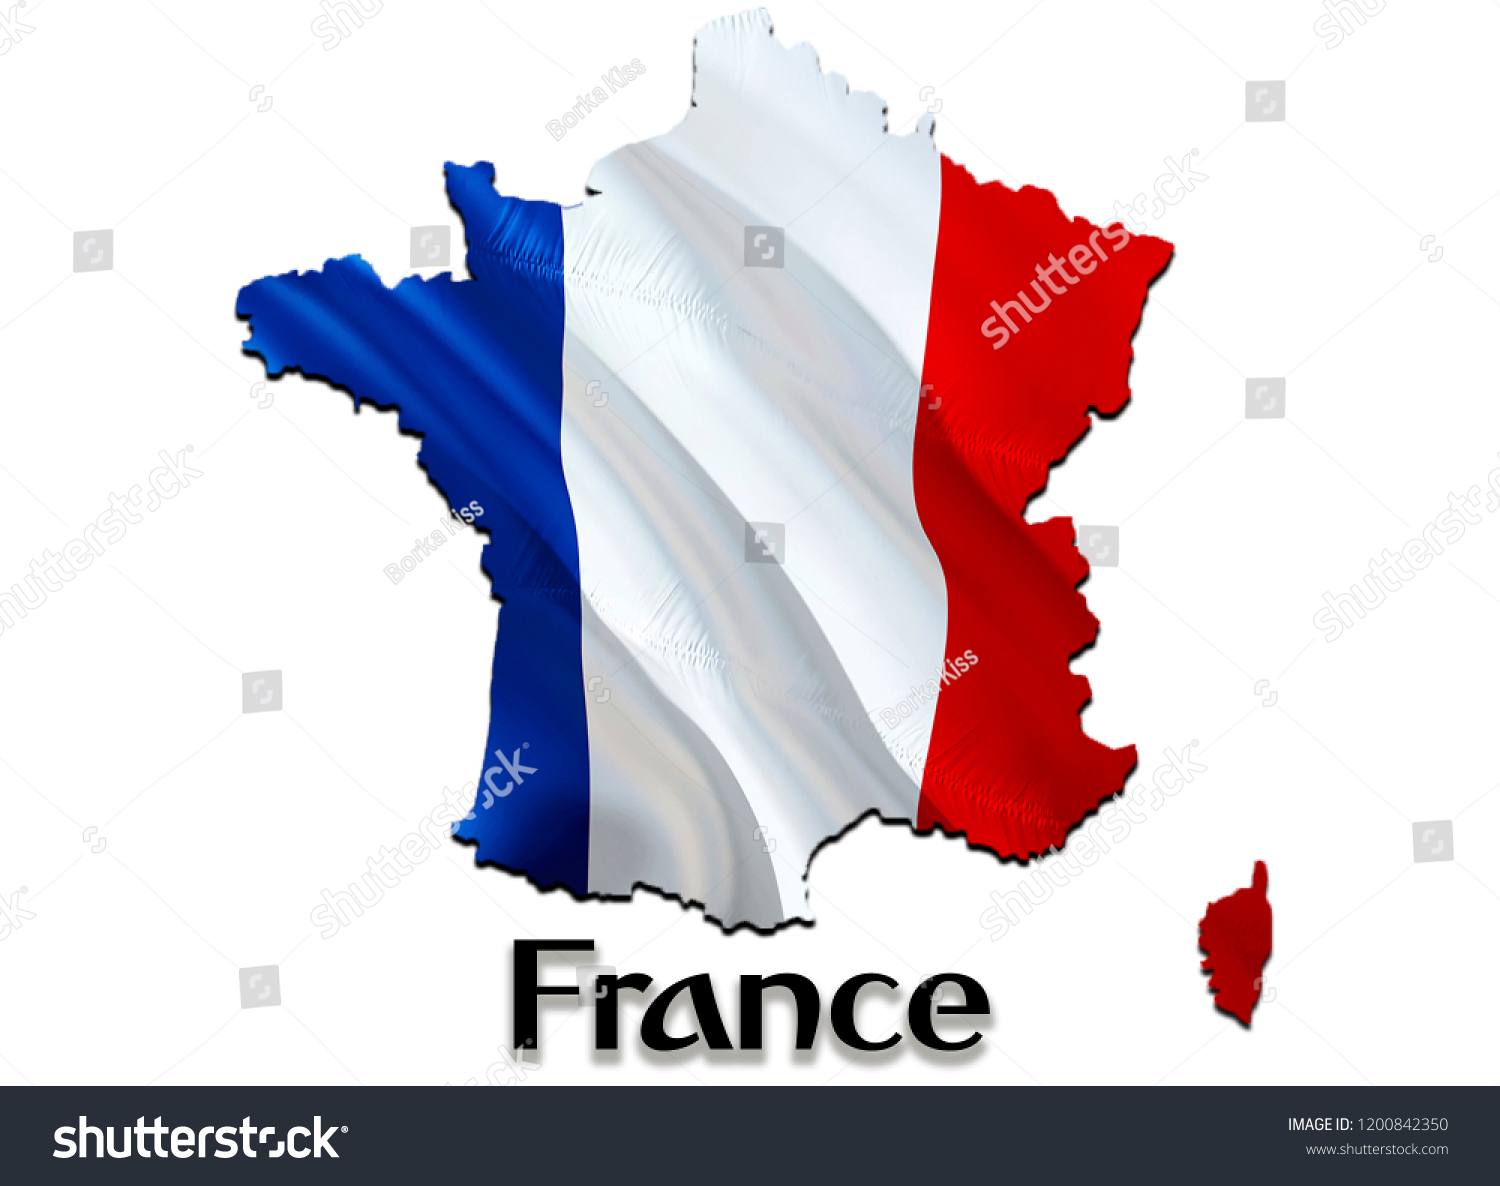 Map Of France Kisses.Flag Map France 3d Rendering France Stock Illustration 1200842350